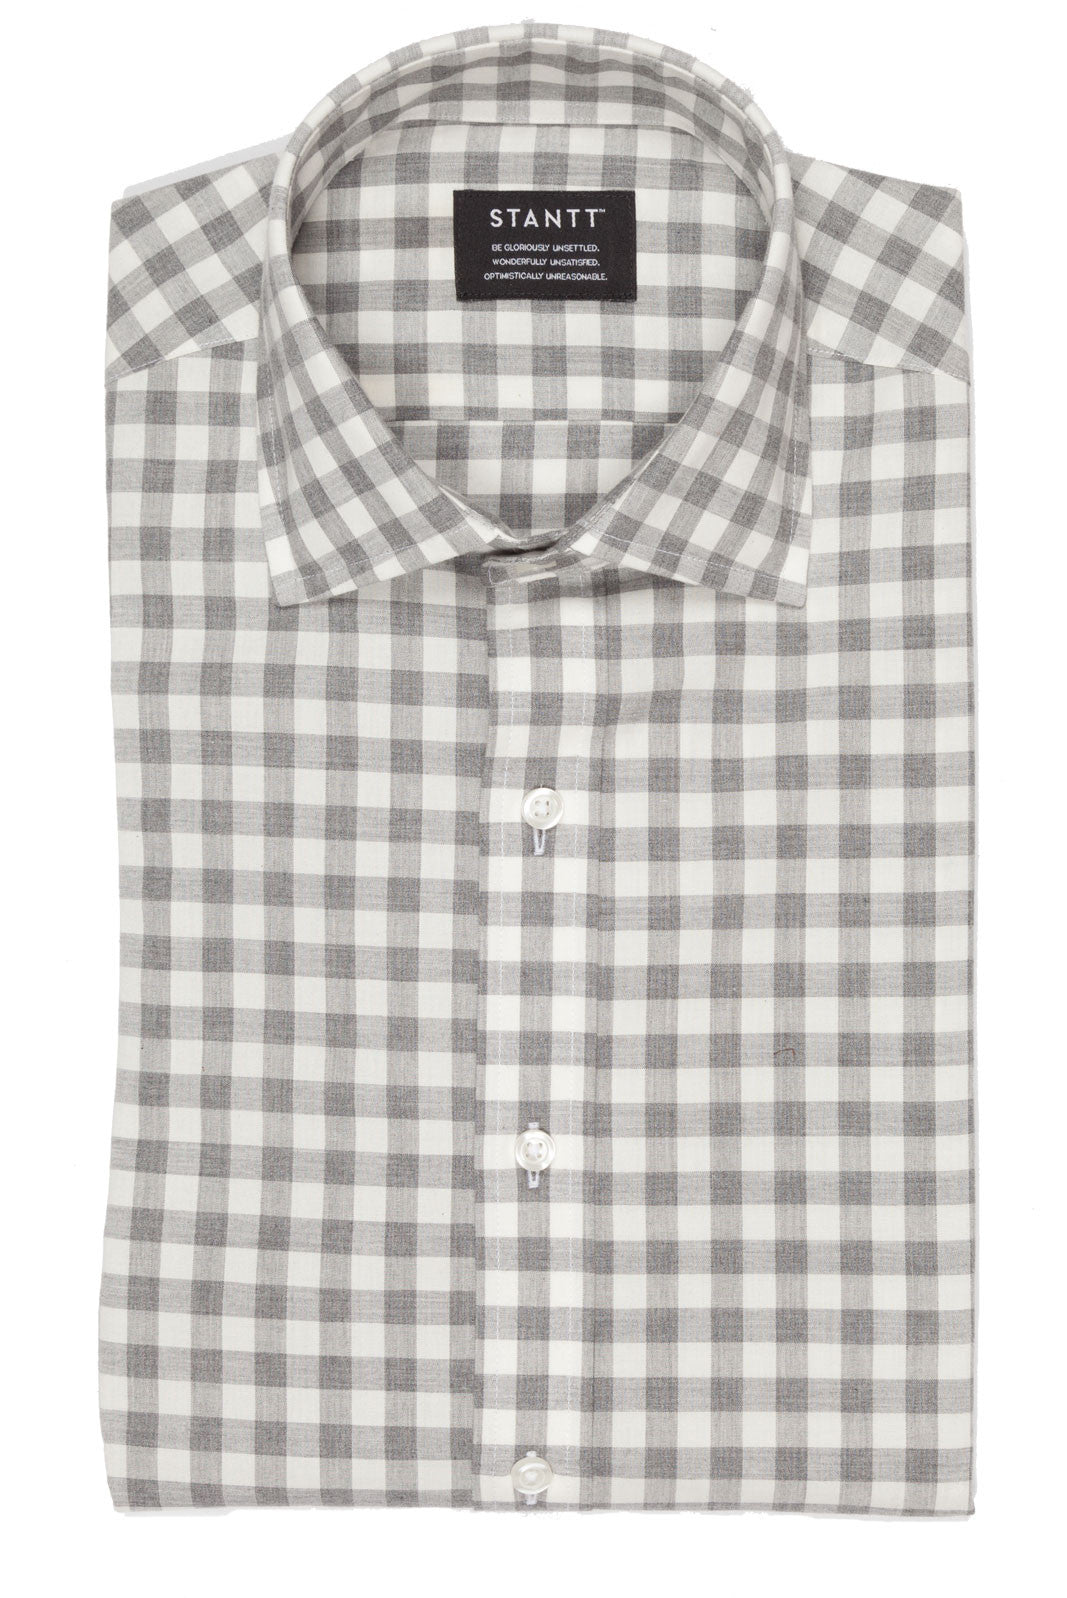 Grey Heather Gingham: Button-Down Collar, Barrel Cuff